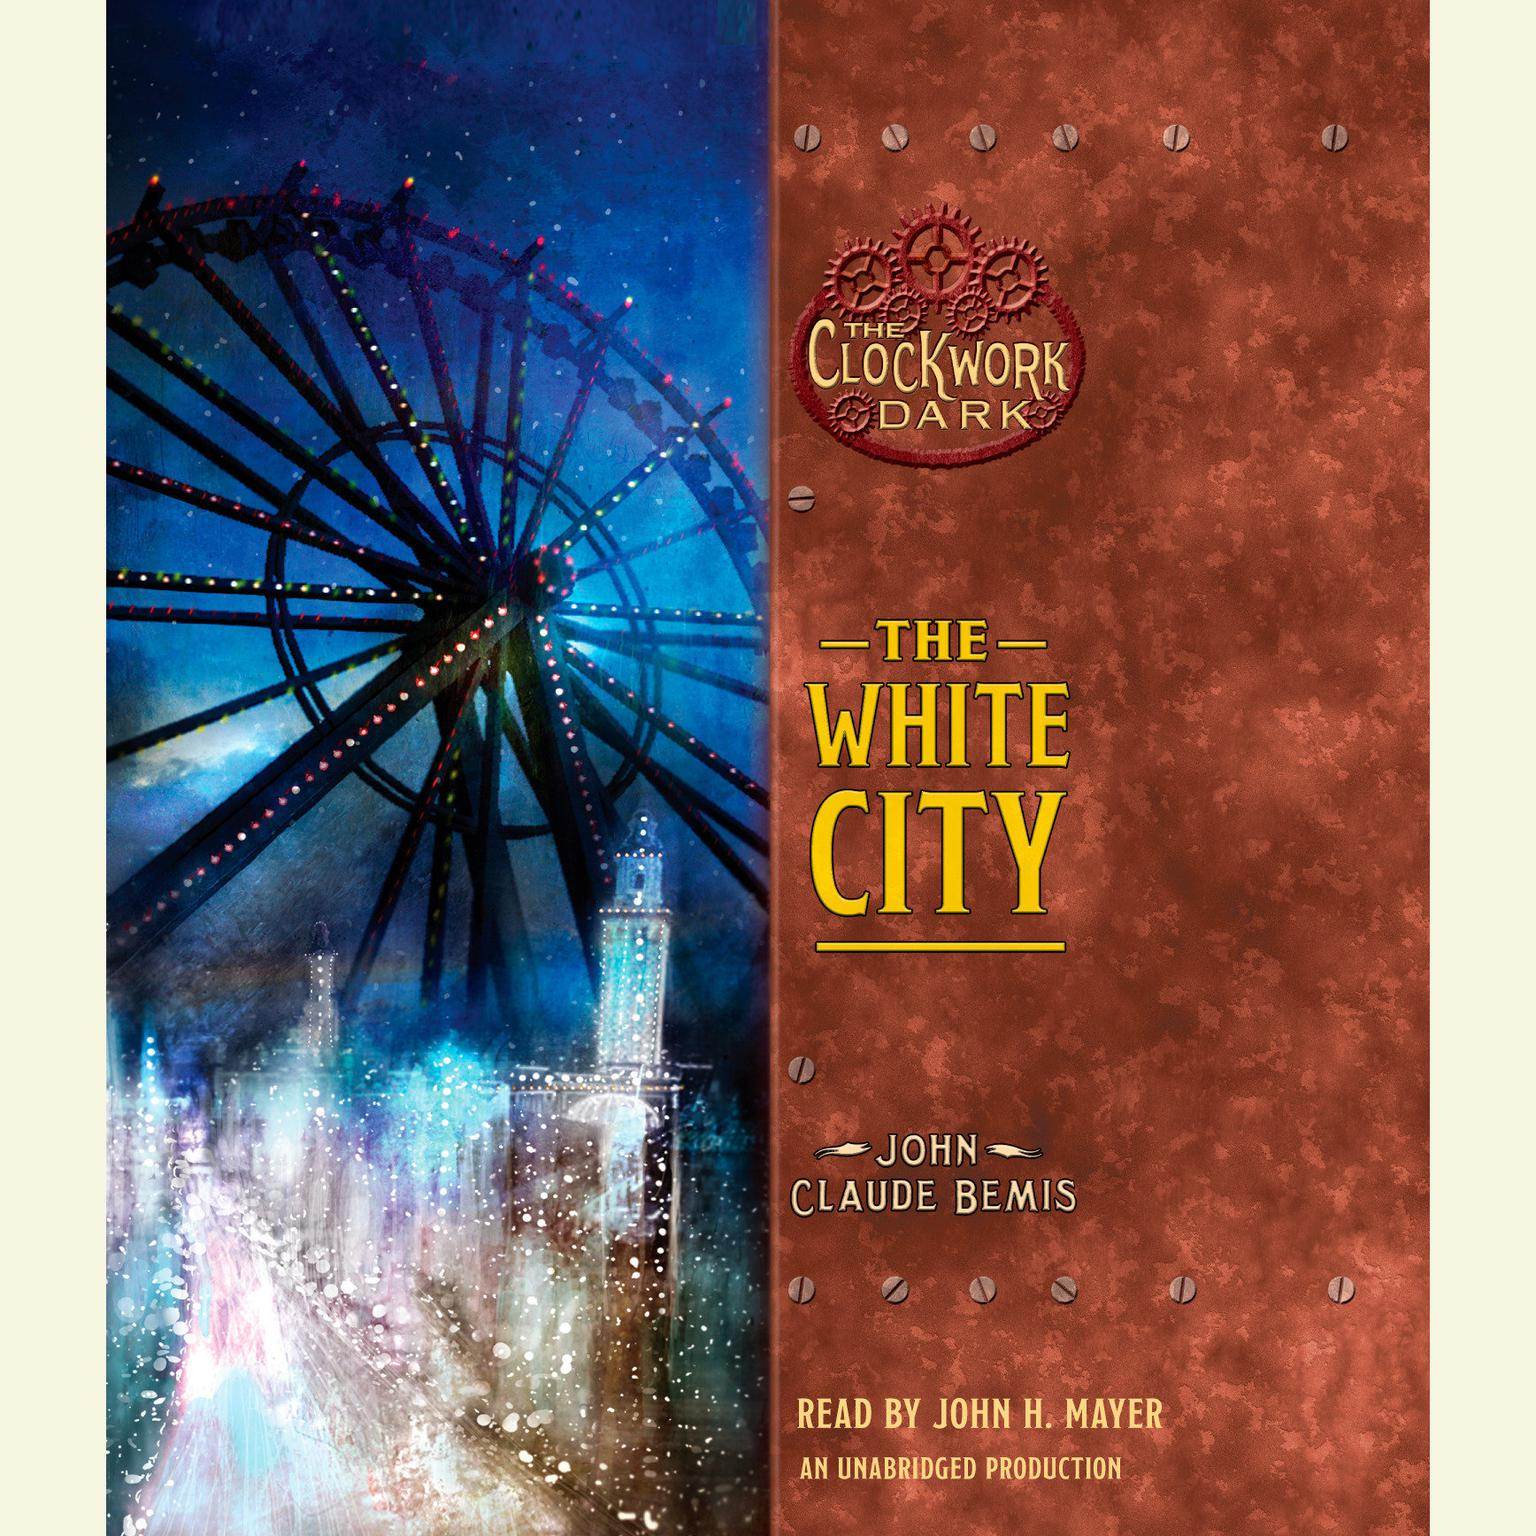 Printable The White City: Book 3 of The Clockwork Dark Audiobook Cover Art